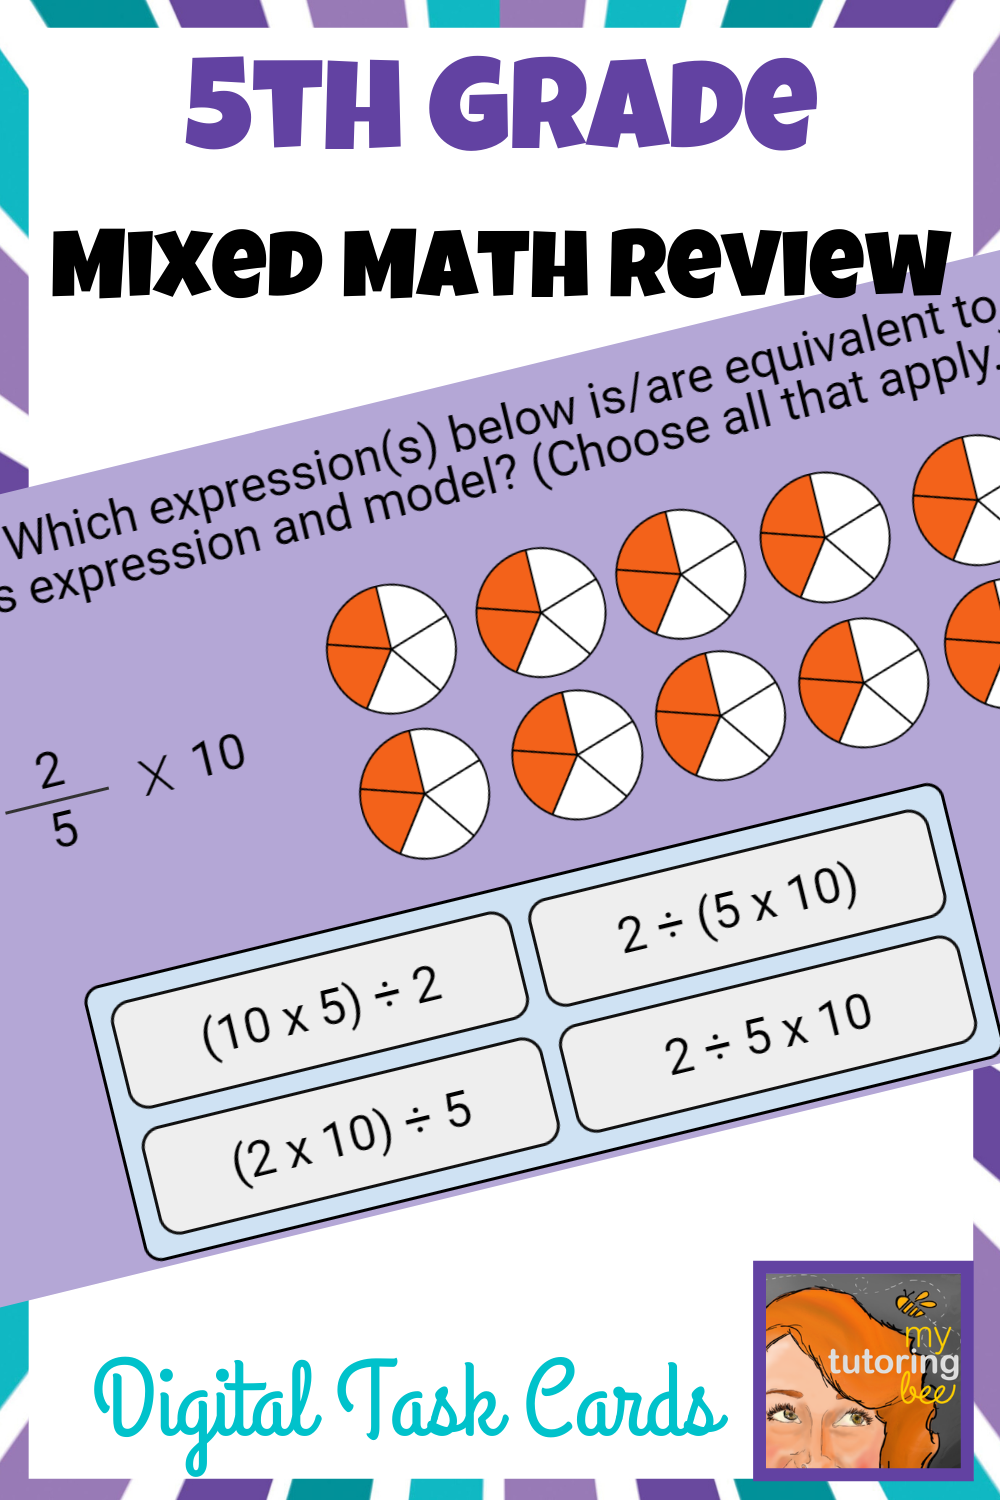 5th Grade Math Review Or Assessment Boom Cards Distance Learning 5th Grade Math Math Review Math Spiral Review [ 1500 x 1000 Pixel ]